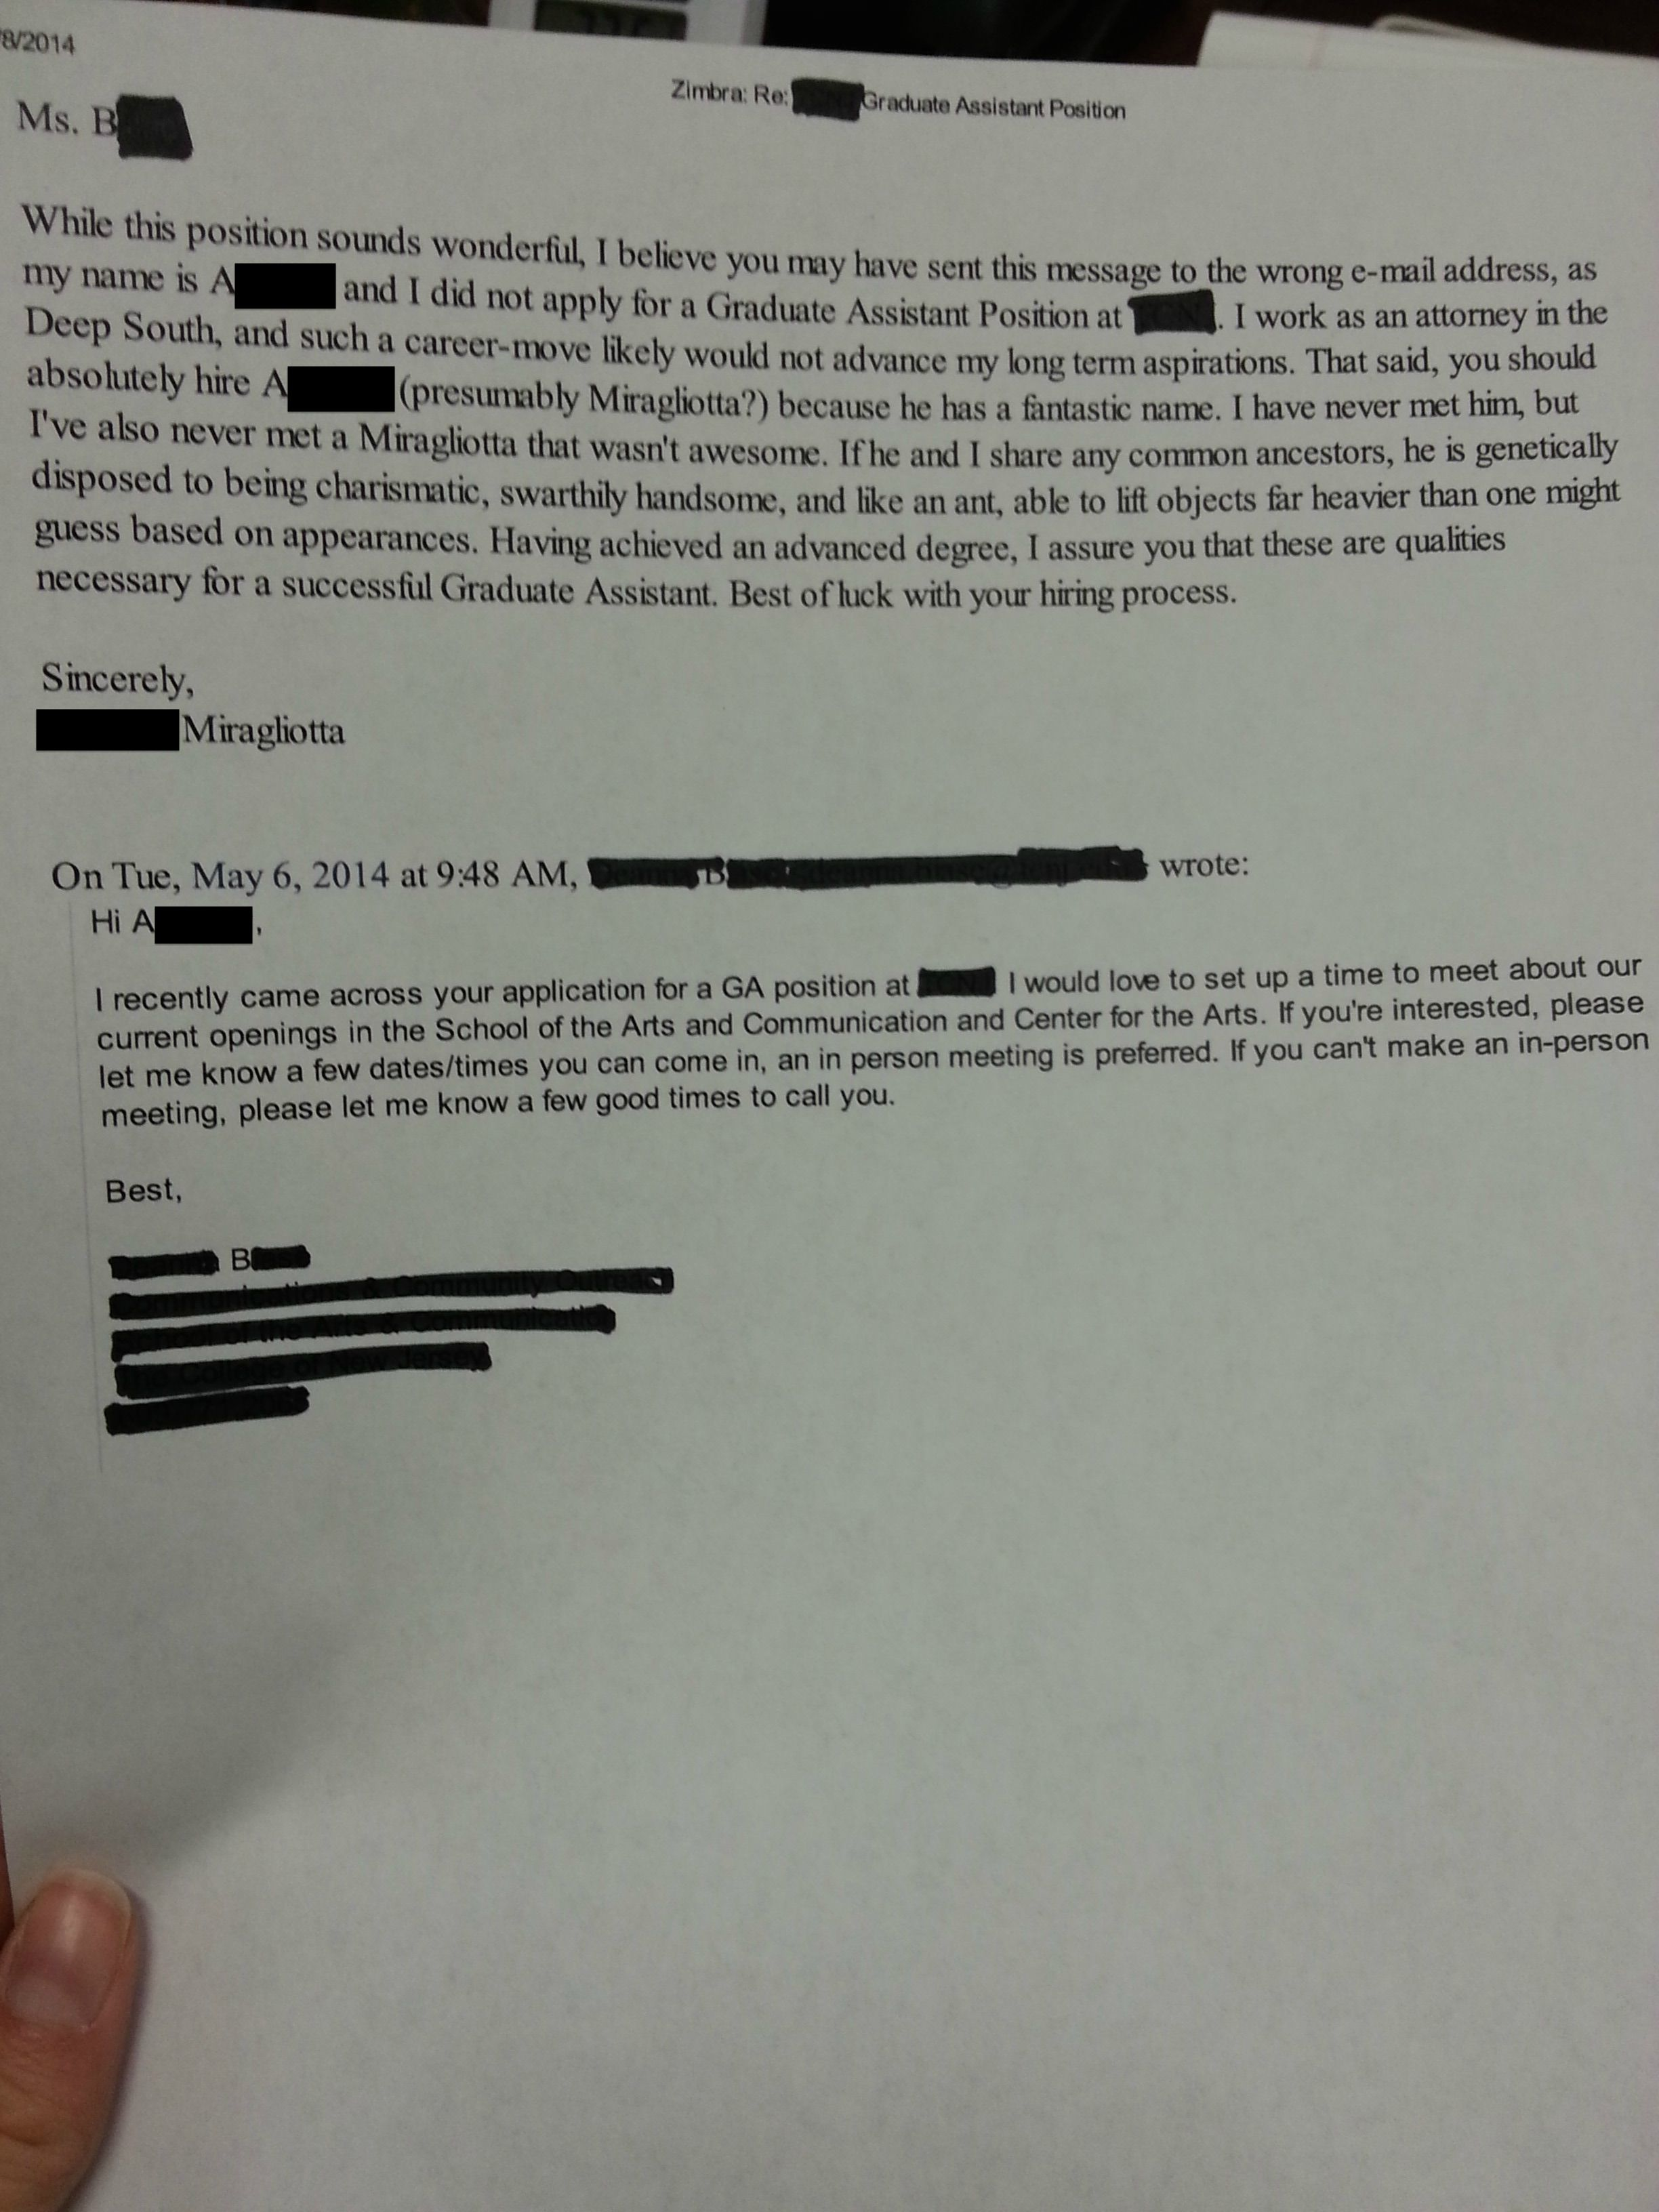 A Job Offer Letter Was Sent To The Wrong Guy Judging By His Awesome